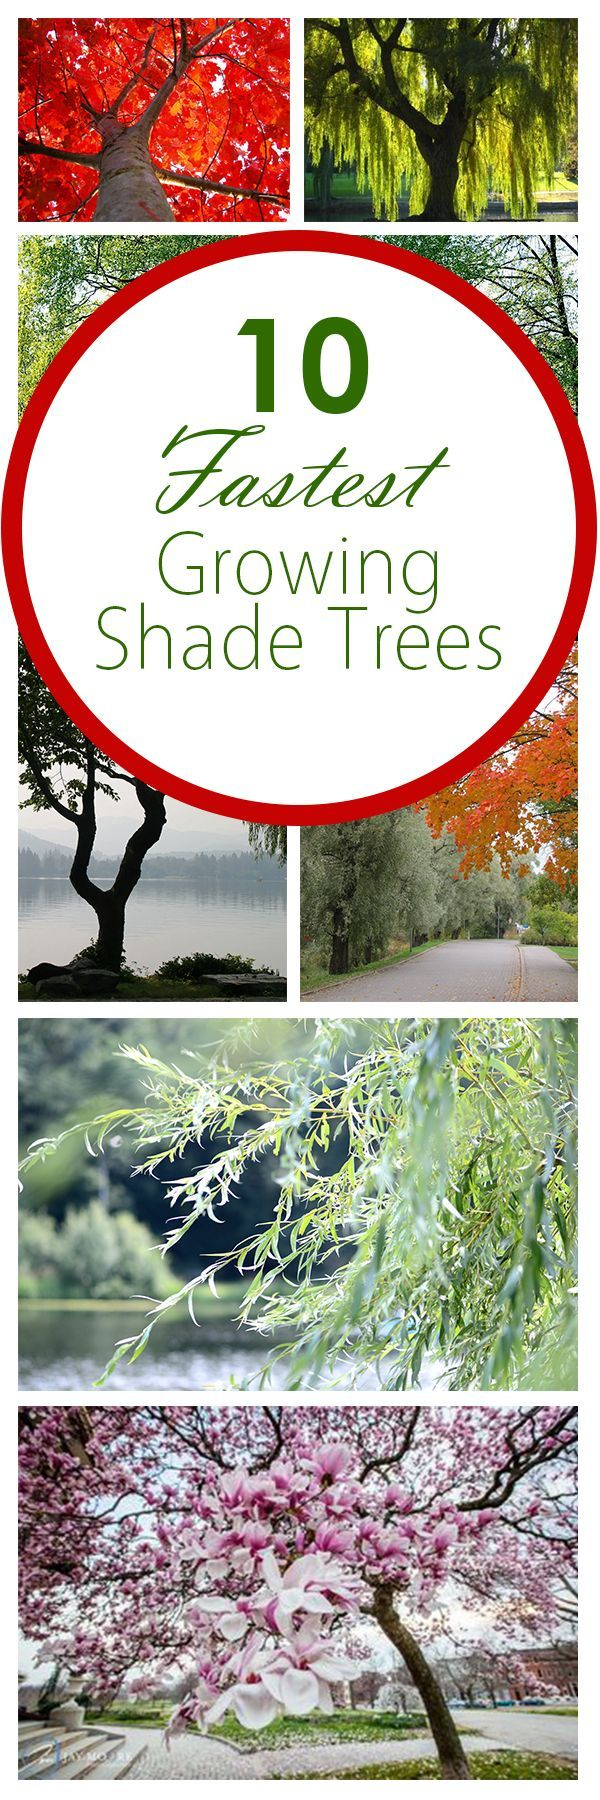 Flower Garden Ideas Shade best 25+ shade trees ideas on pinterest | fast growing shade trees